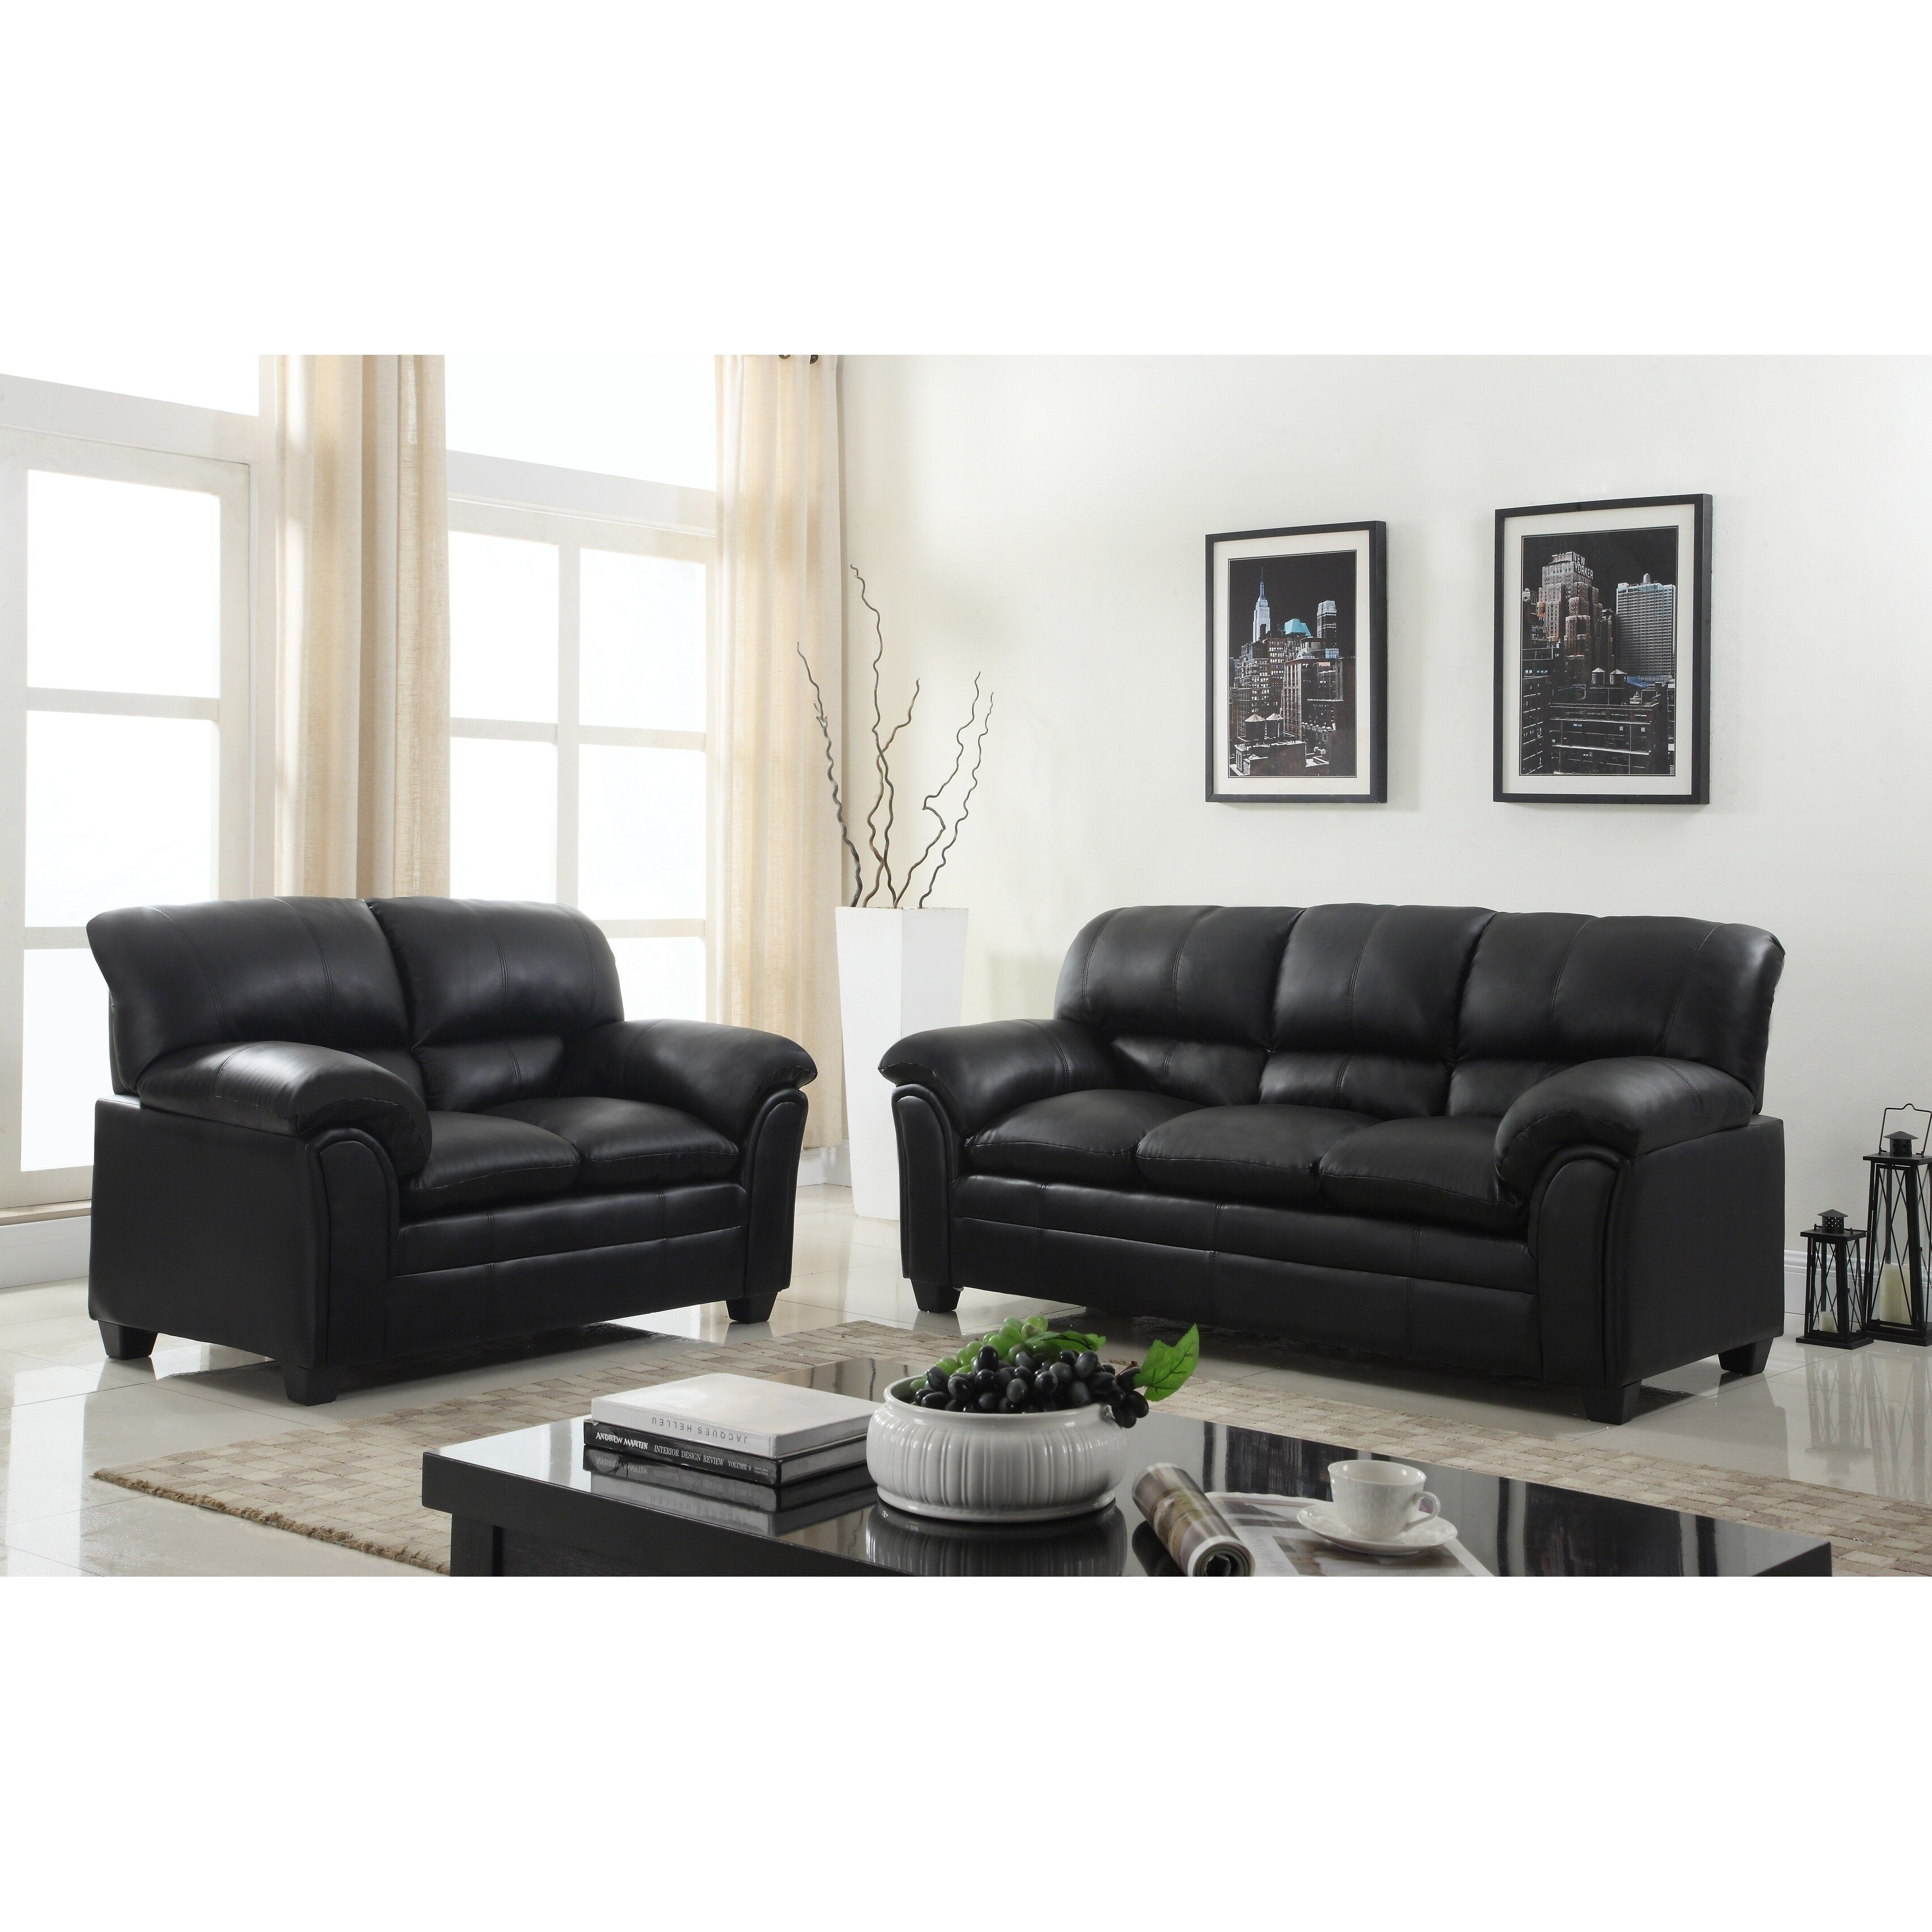 Joyce Black Leather Sofa Couch Loveseat Chair Tufted Living Room Set Leather Sofa And Loveseat 3 Piece Living Room Set Living Room Sets Furniture